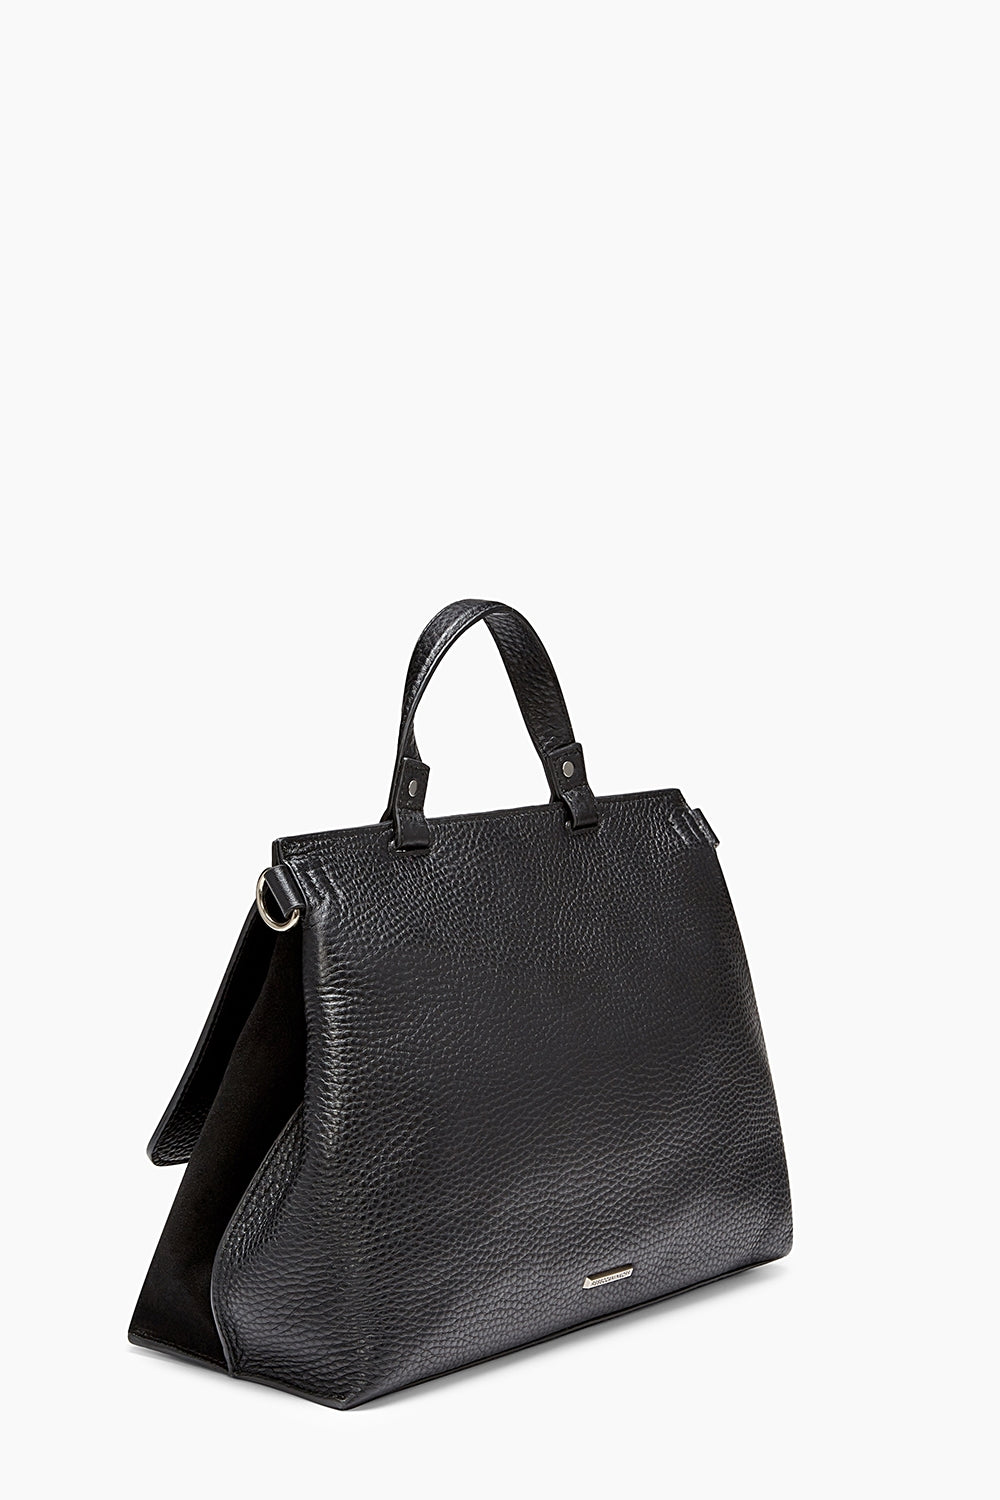 Keith Medium Satchel